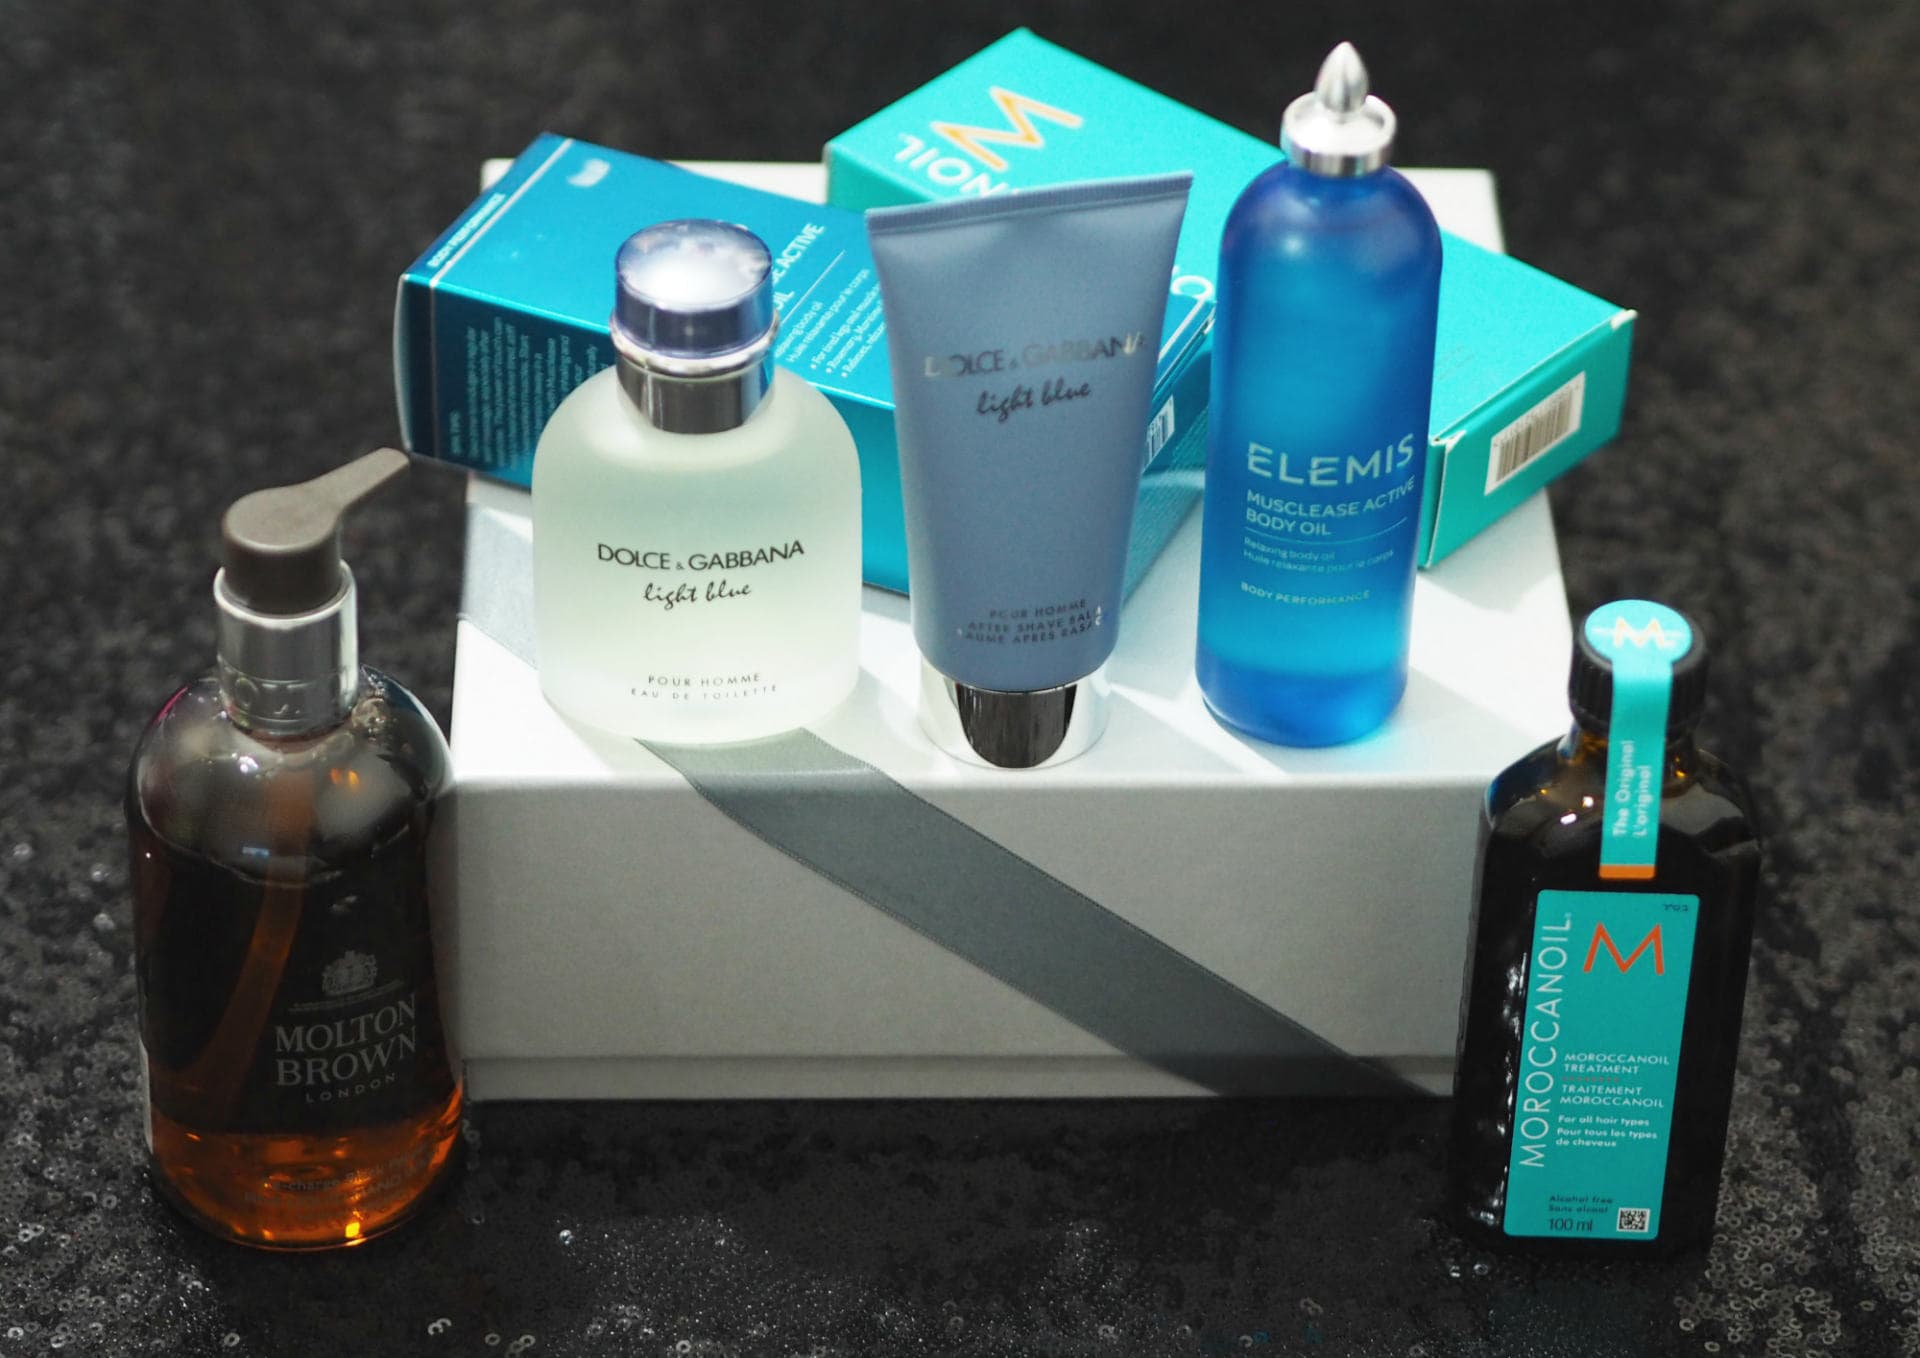 Cosmetify Haul ft. Moroccanoil, Molton Brown, Elemis and D&G